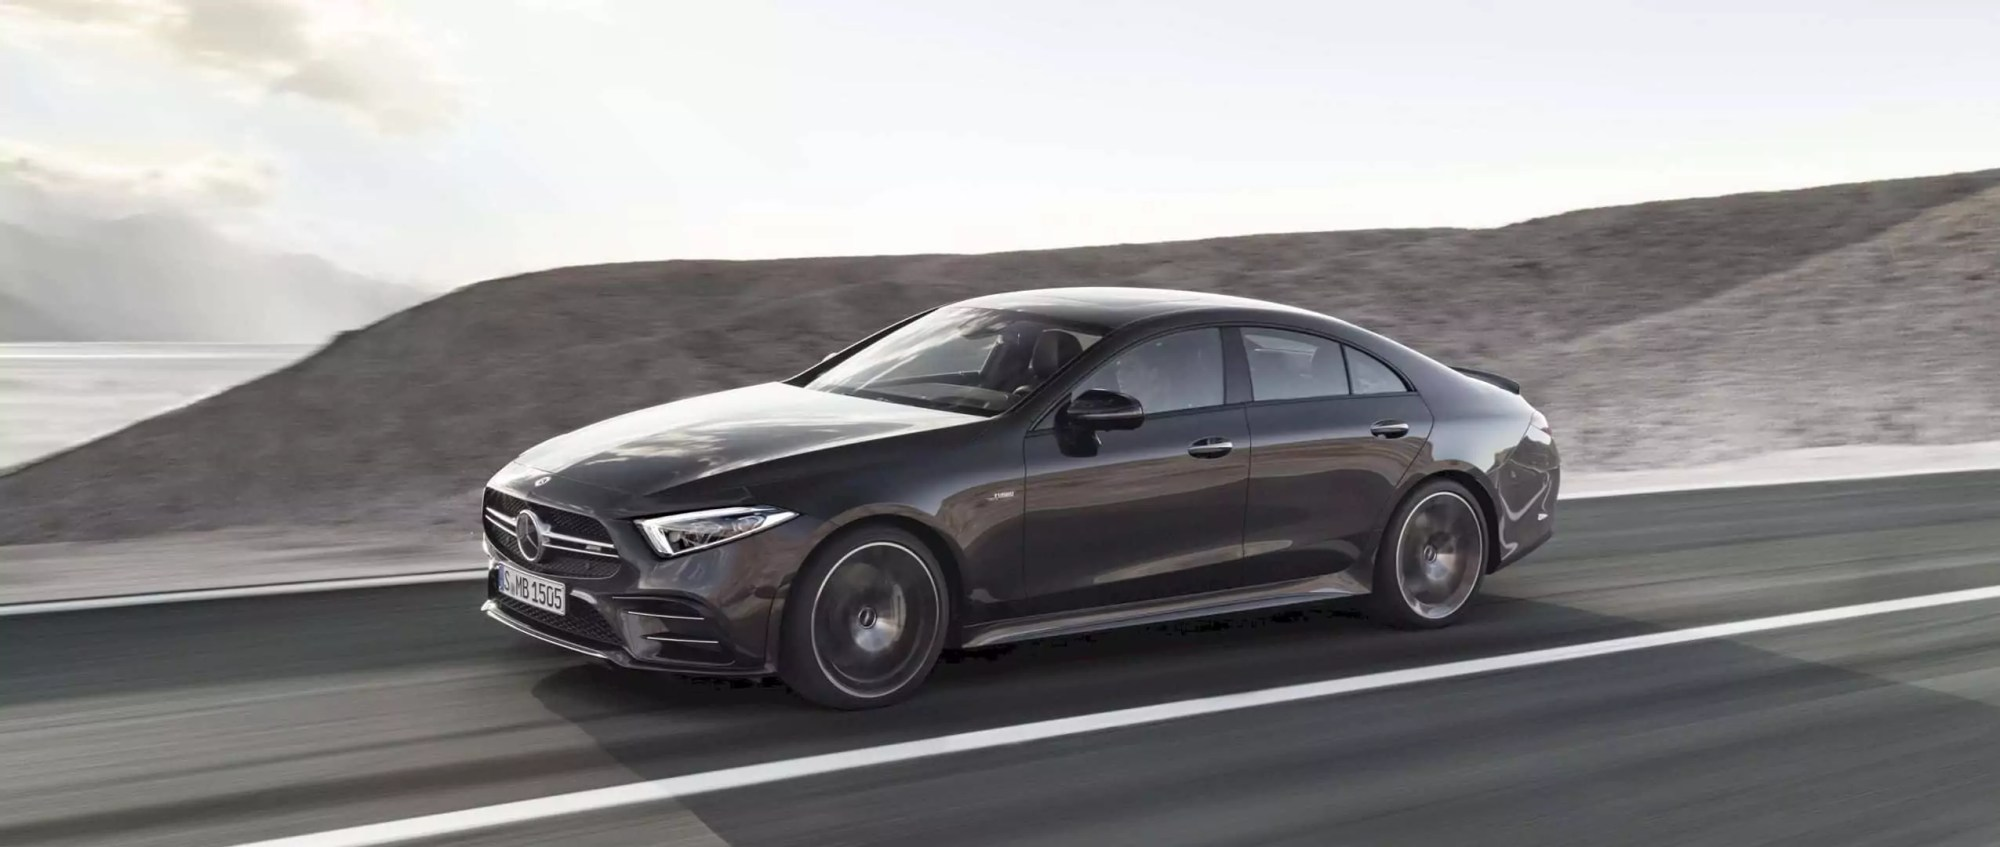 The New Mercedes-AMG 53 Series: The Perfect Combination of Performance and Design